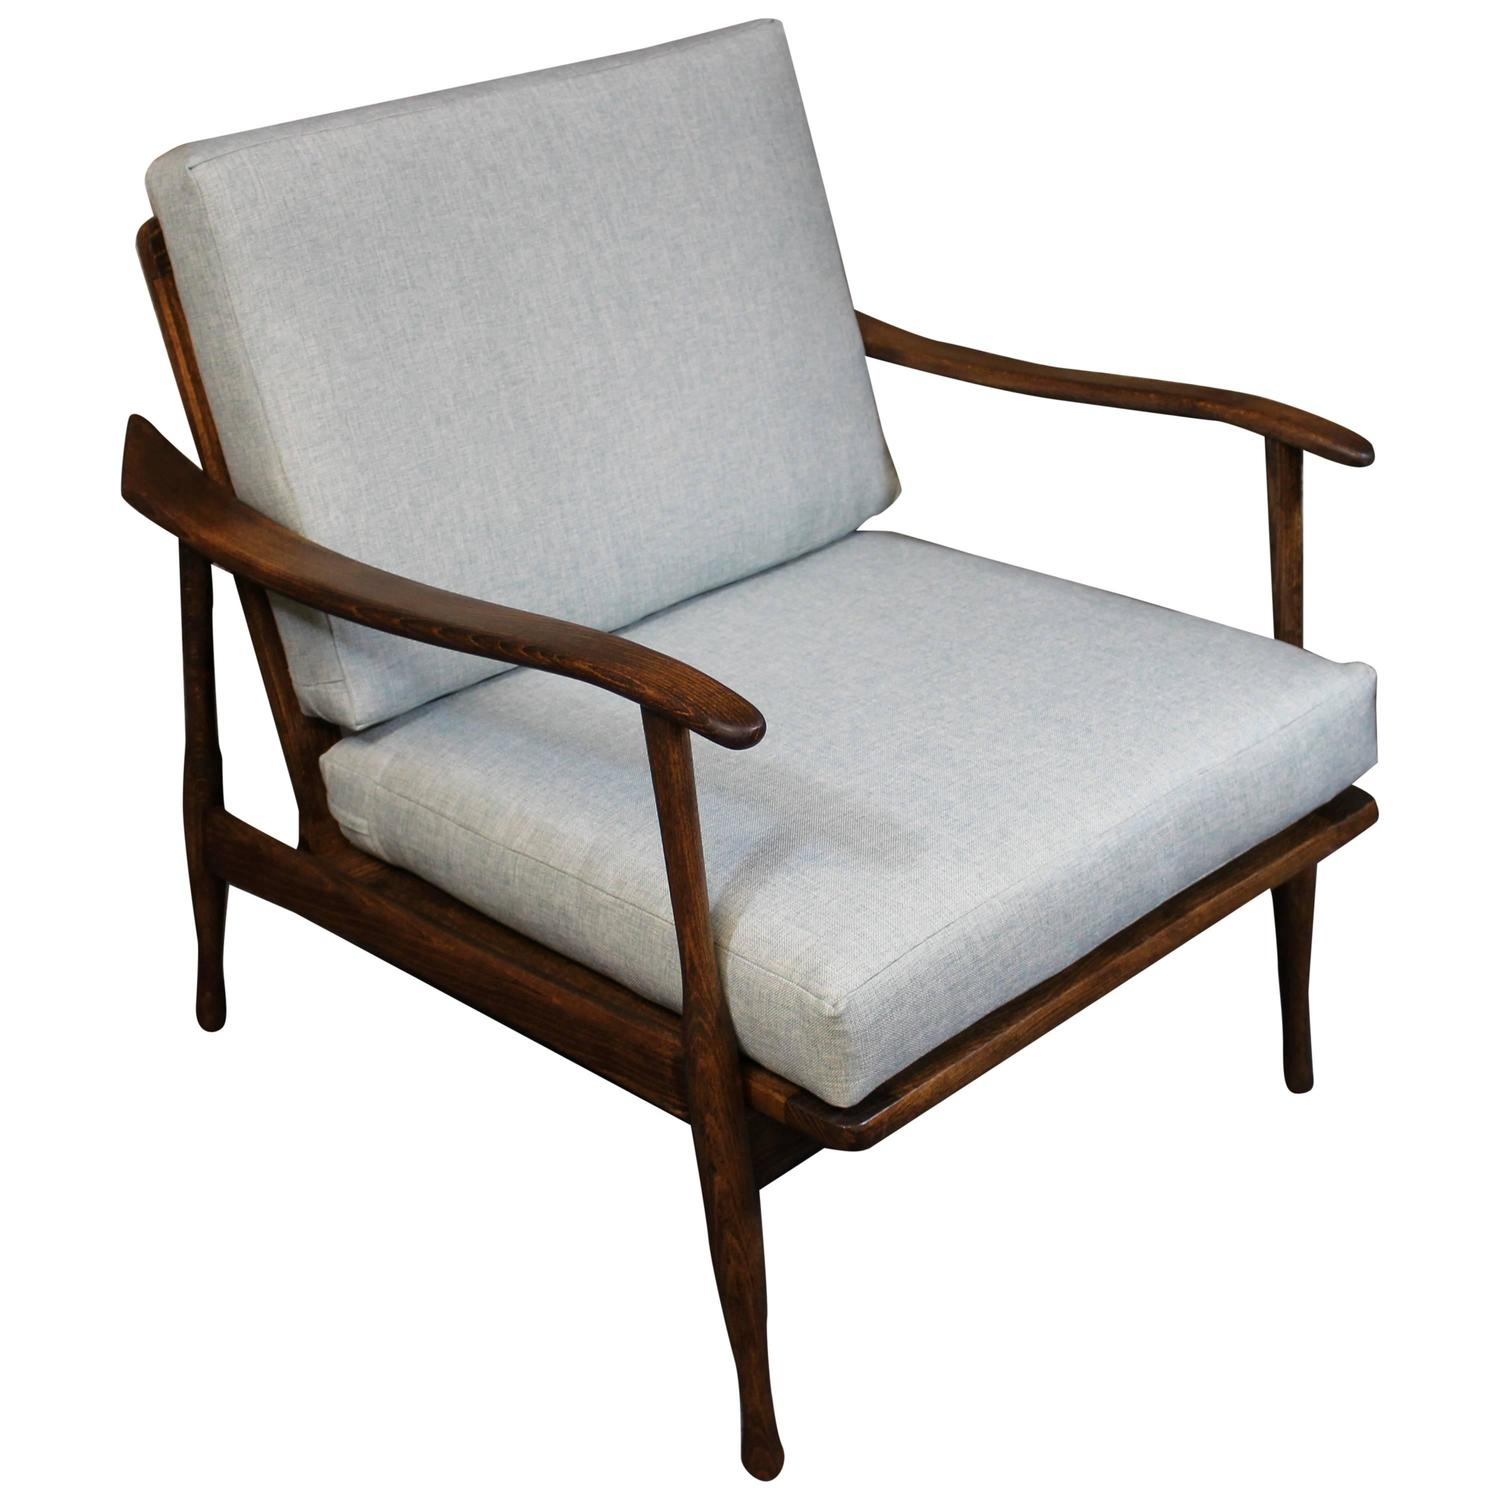 Mid century modern lounge chair at 1stdibs for Stylish lounge chairs